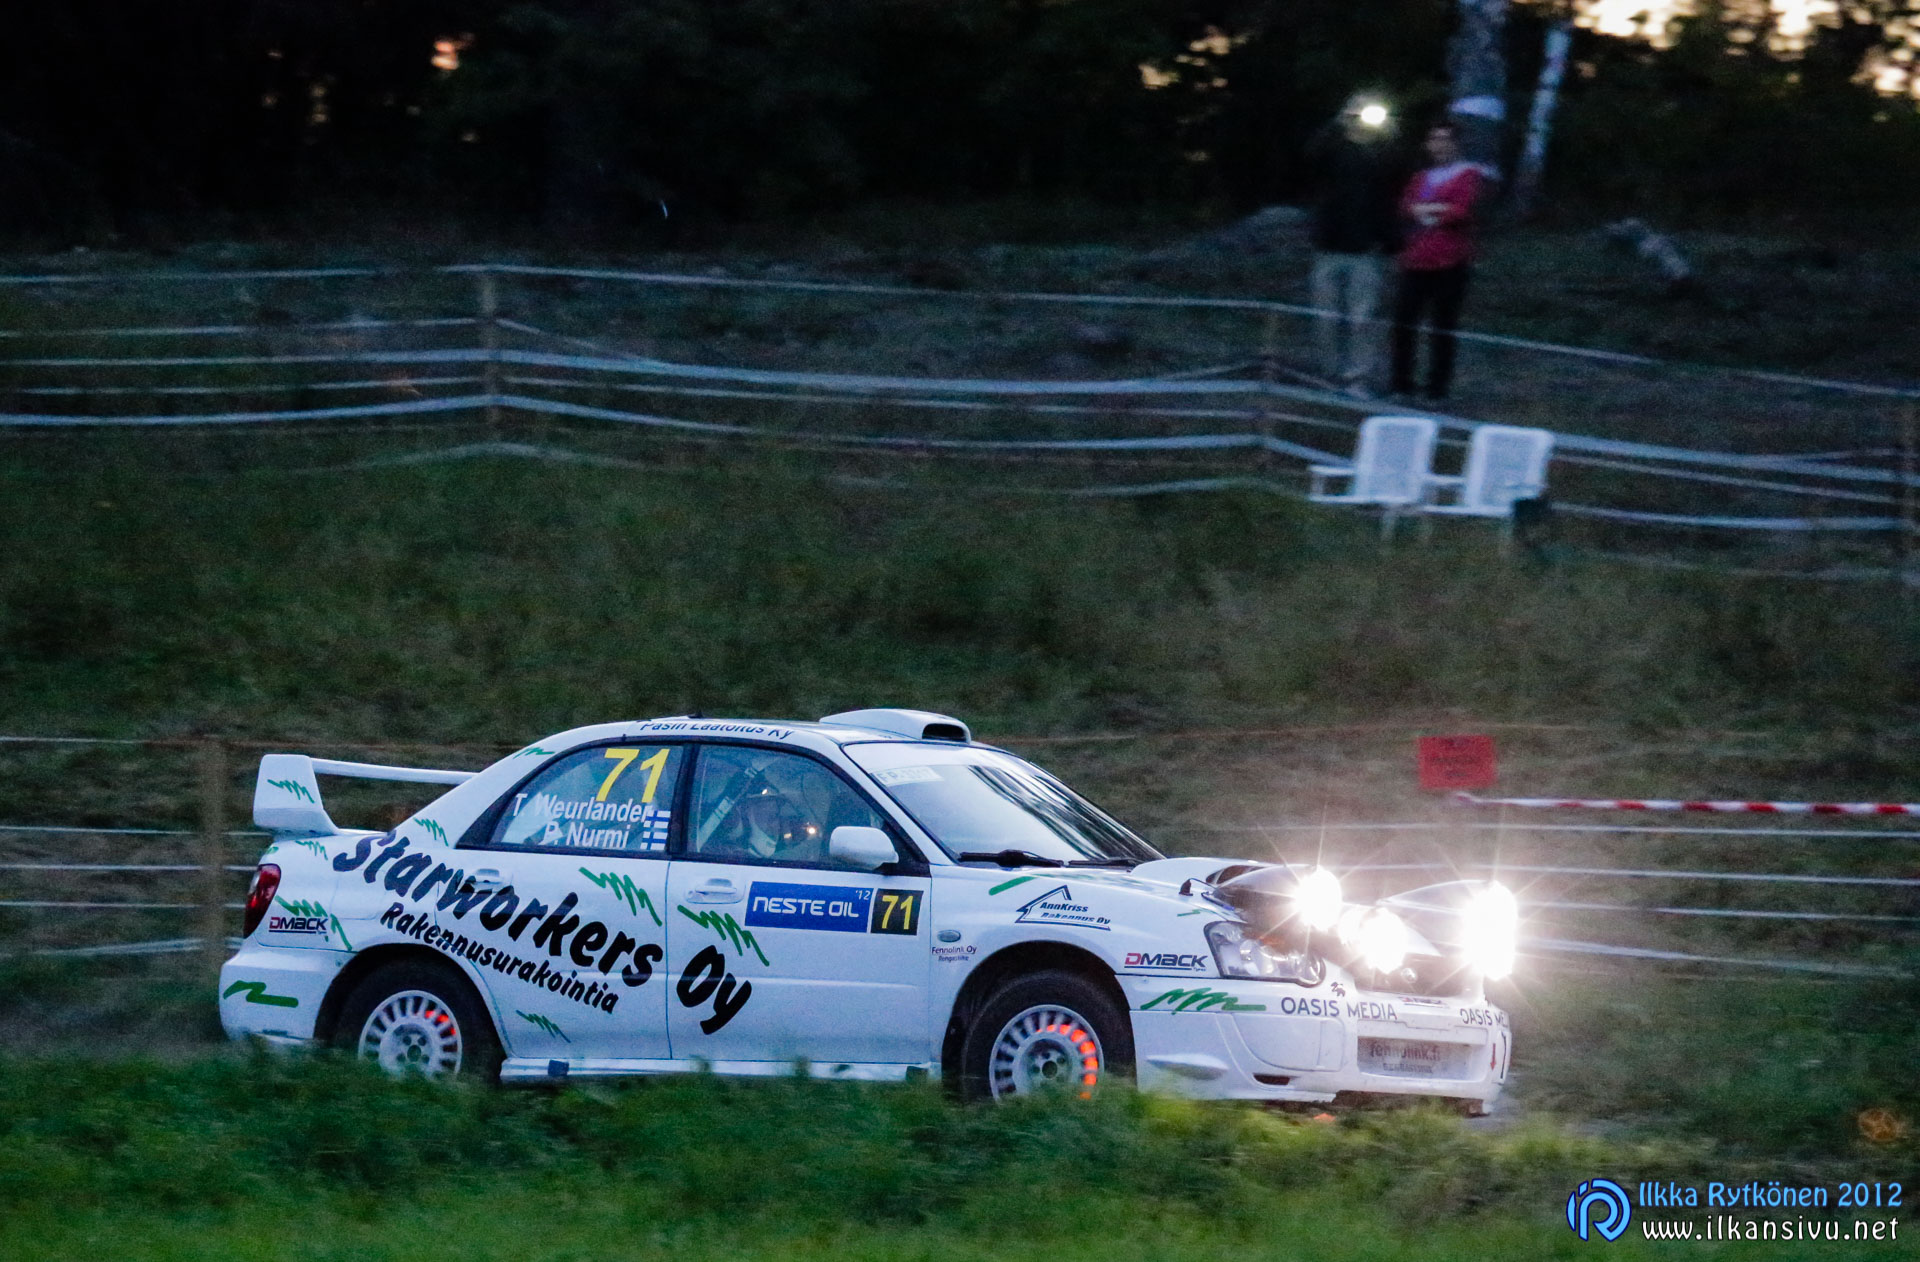 1/400 s, f/6,3, ISO 51200, 285 mm, EF100-400mm f/4.5-5.6L IS USM, Neste Oil Rally Finland 2012